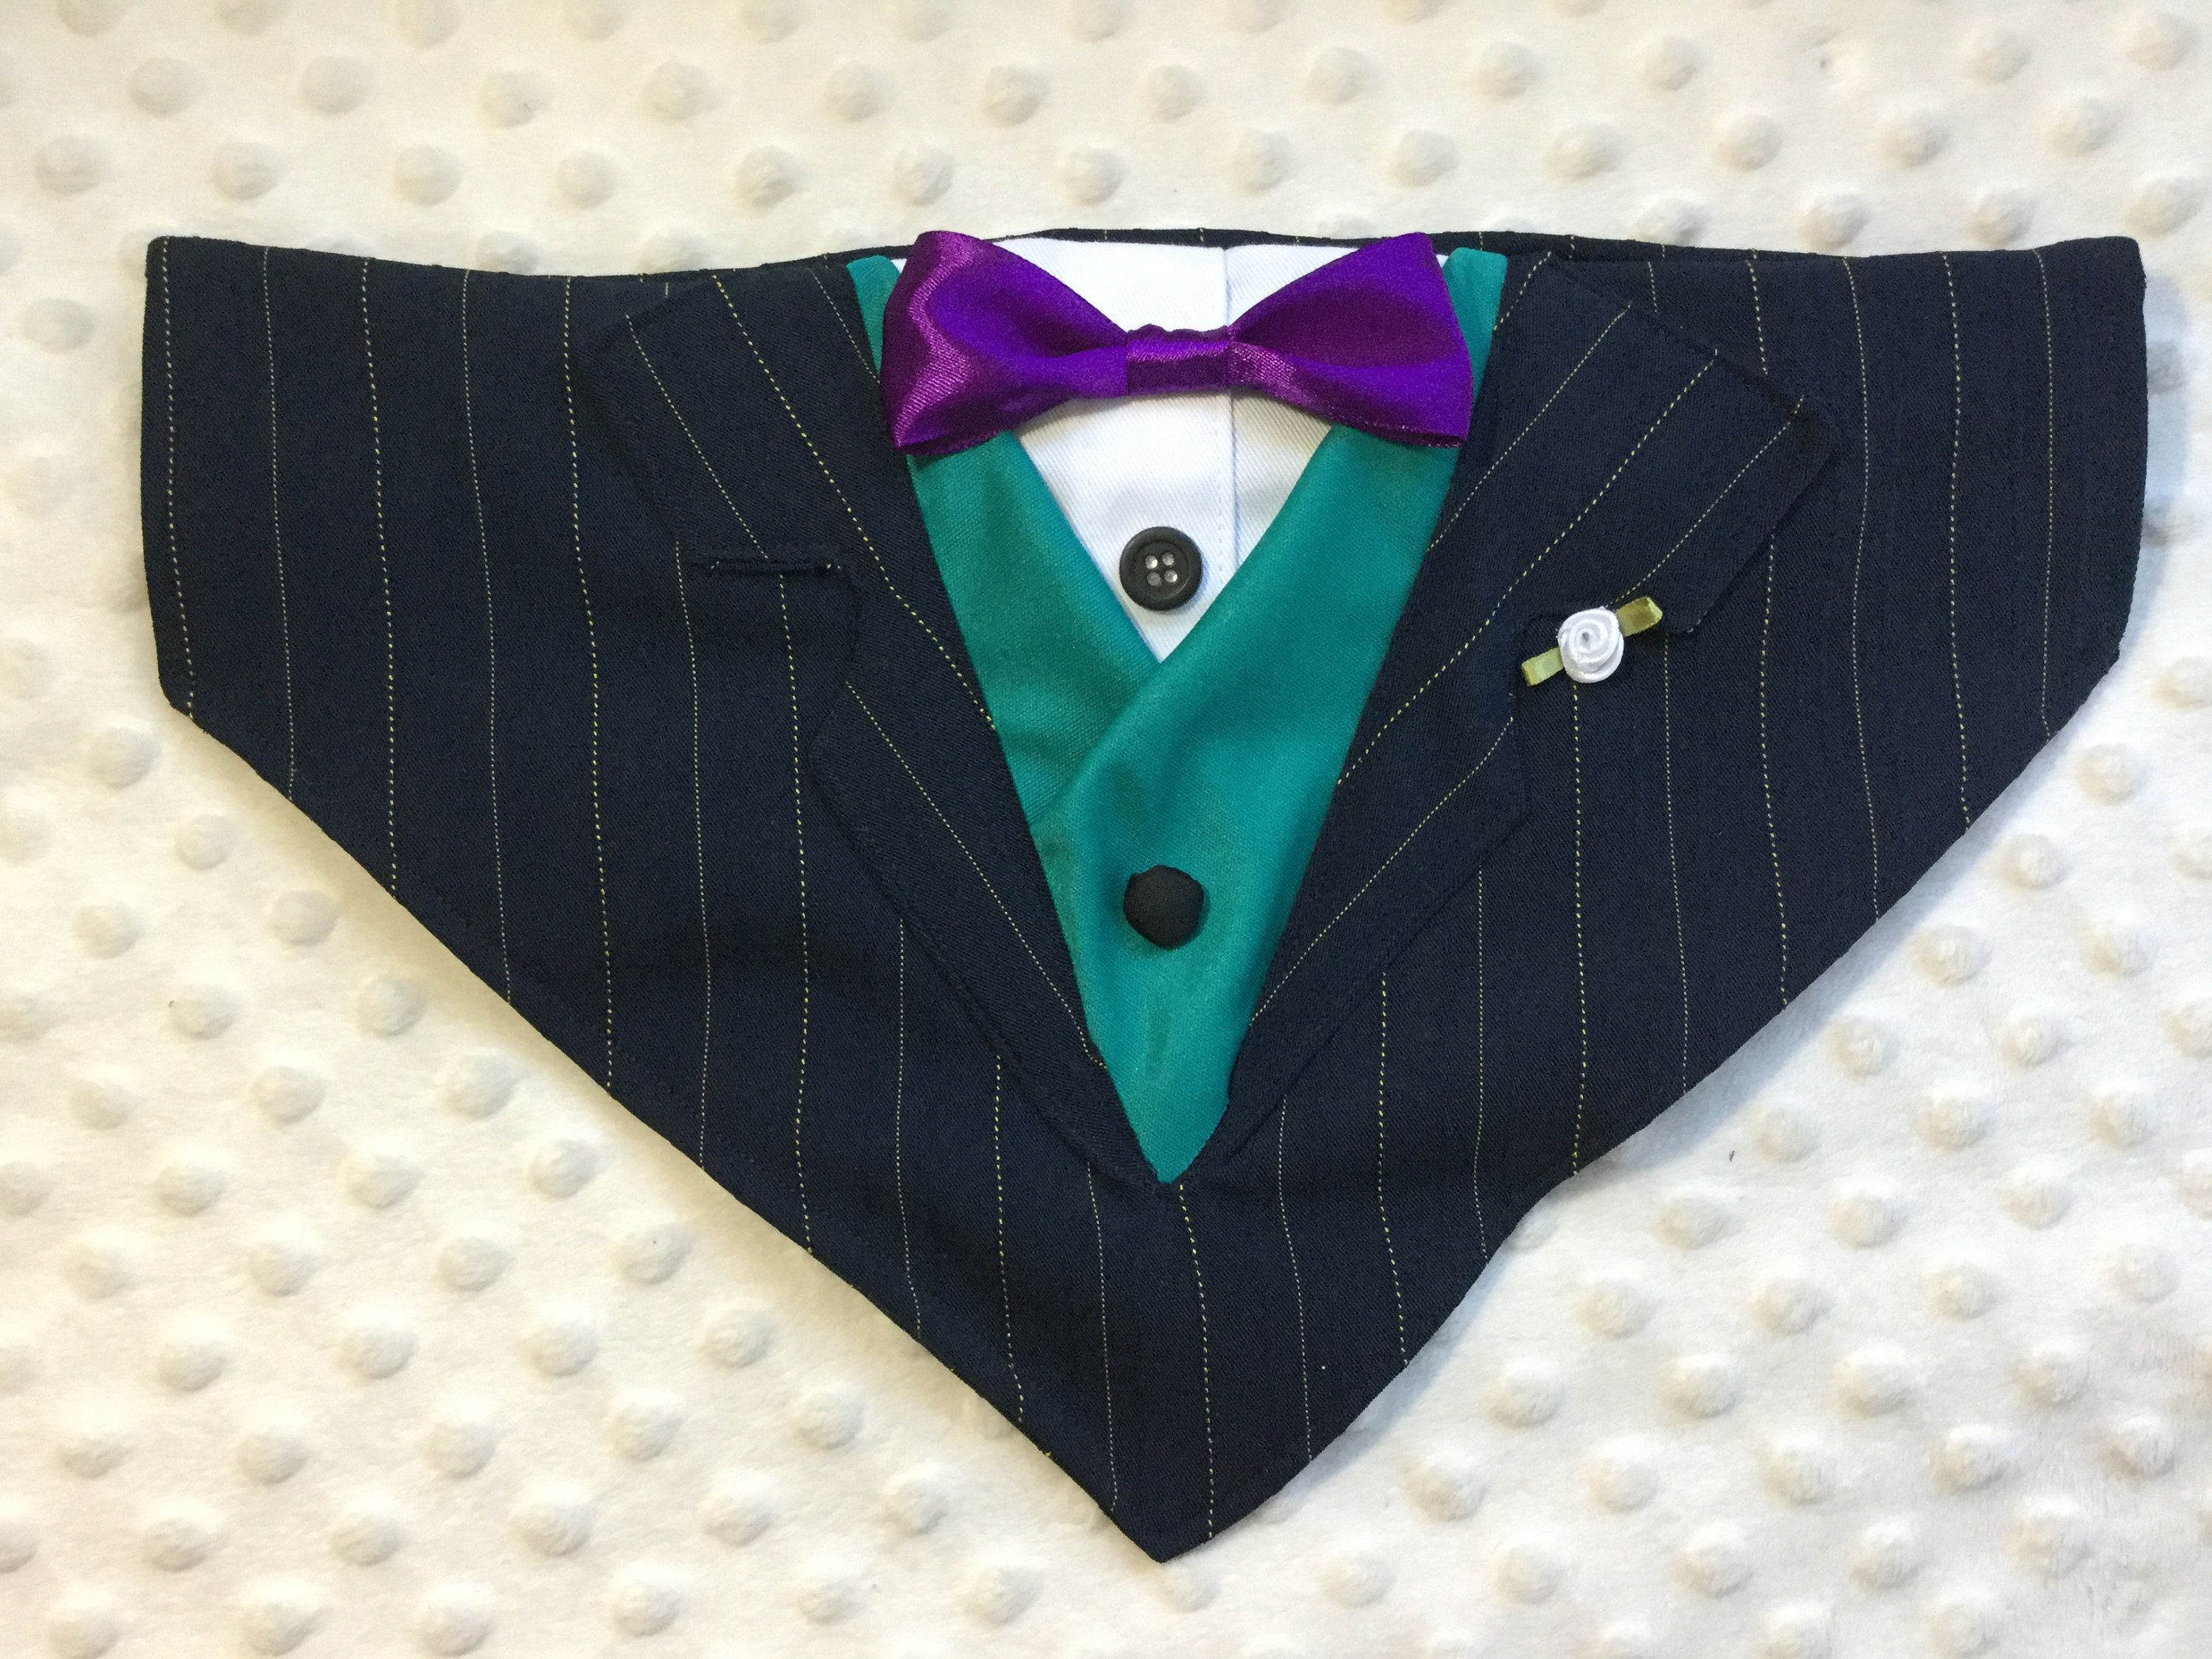 fa329fc128 Navy blue pinstriped dog tuxedo with optional vest and bow tie, Collar  Bandana, dog or cat. small, med or large dogs by AmandasBandanas on Etsy